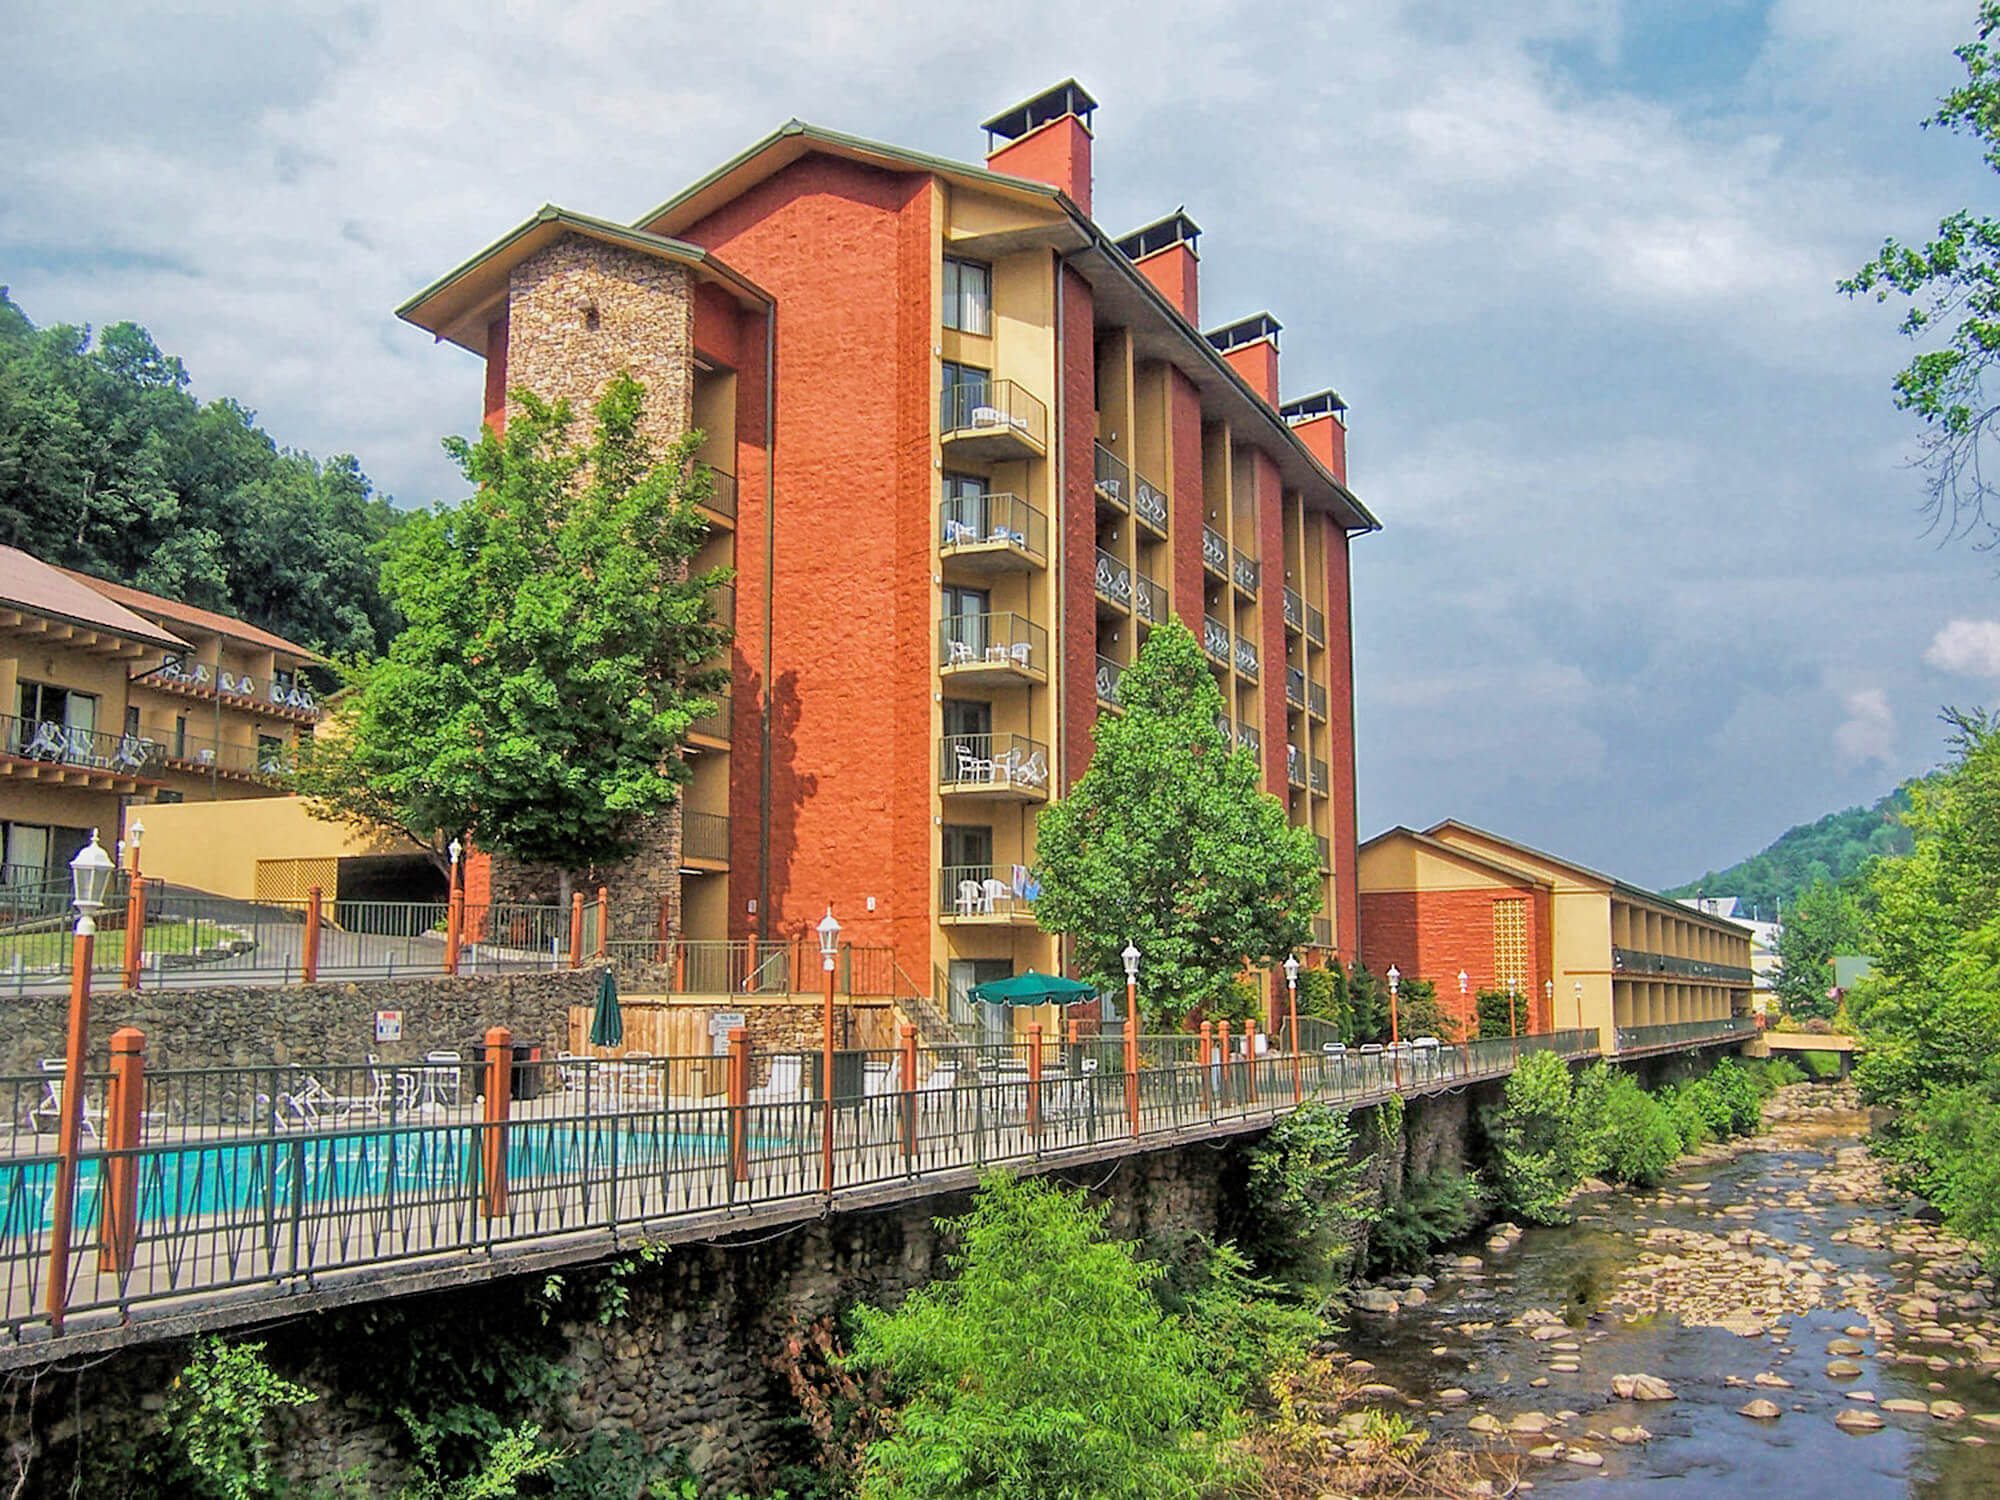 Overlooking the scenic Little Pigeon River, the River Terrace Resort and Gatlinburg Convention Center lies in the heart of downtown Gatlinburg and offers guests comfortable accommodations, all within minutes of Great Smoky Mountains National Park.